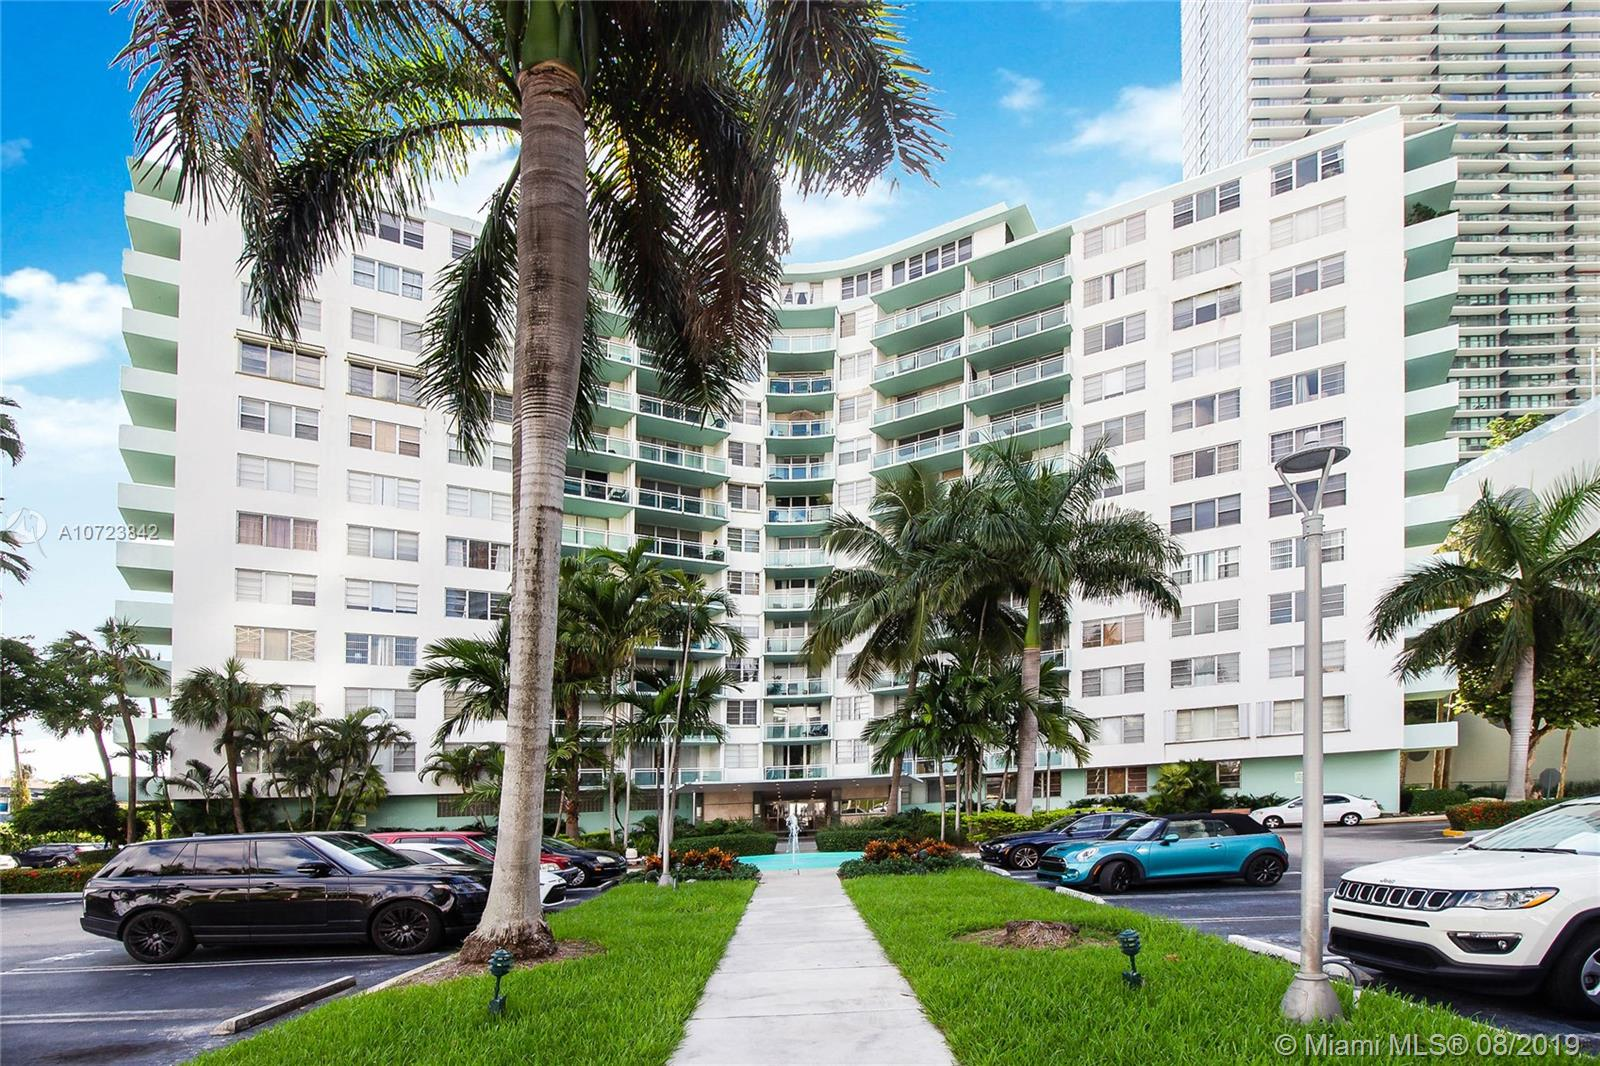 3301 N E 5TH AVE #820 For Sale A10723842, FL